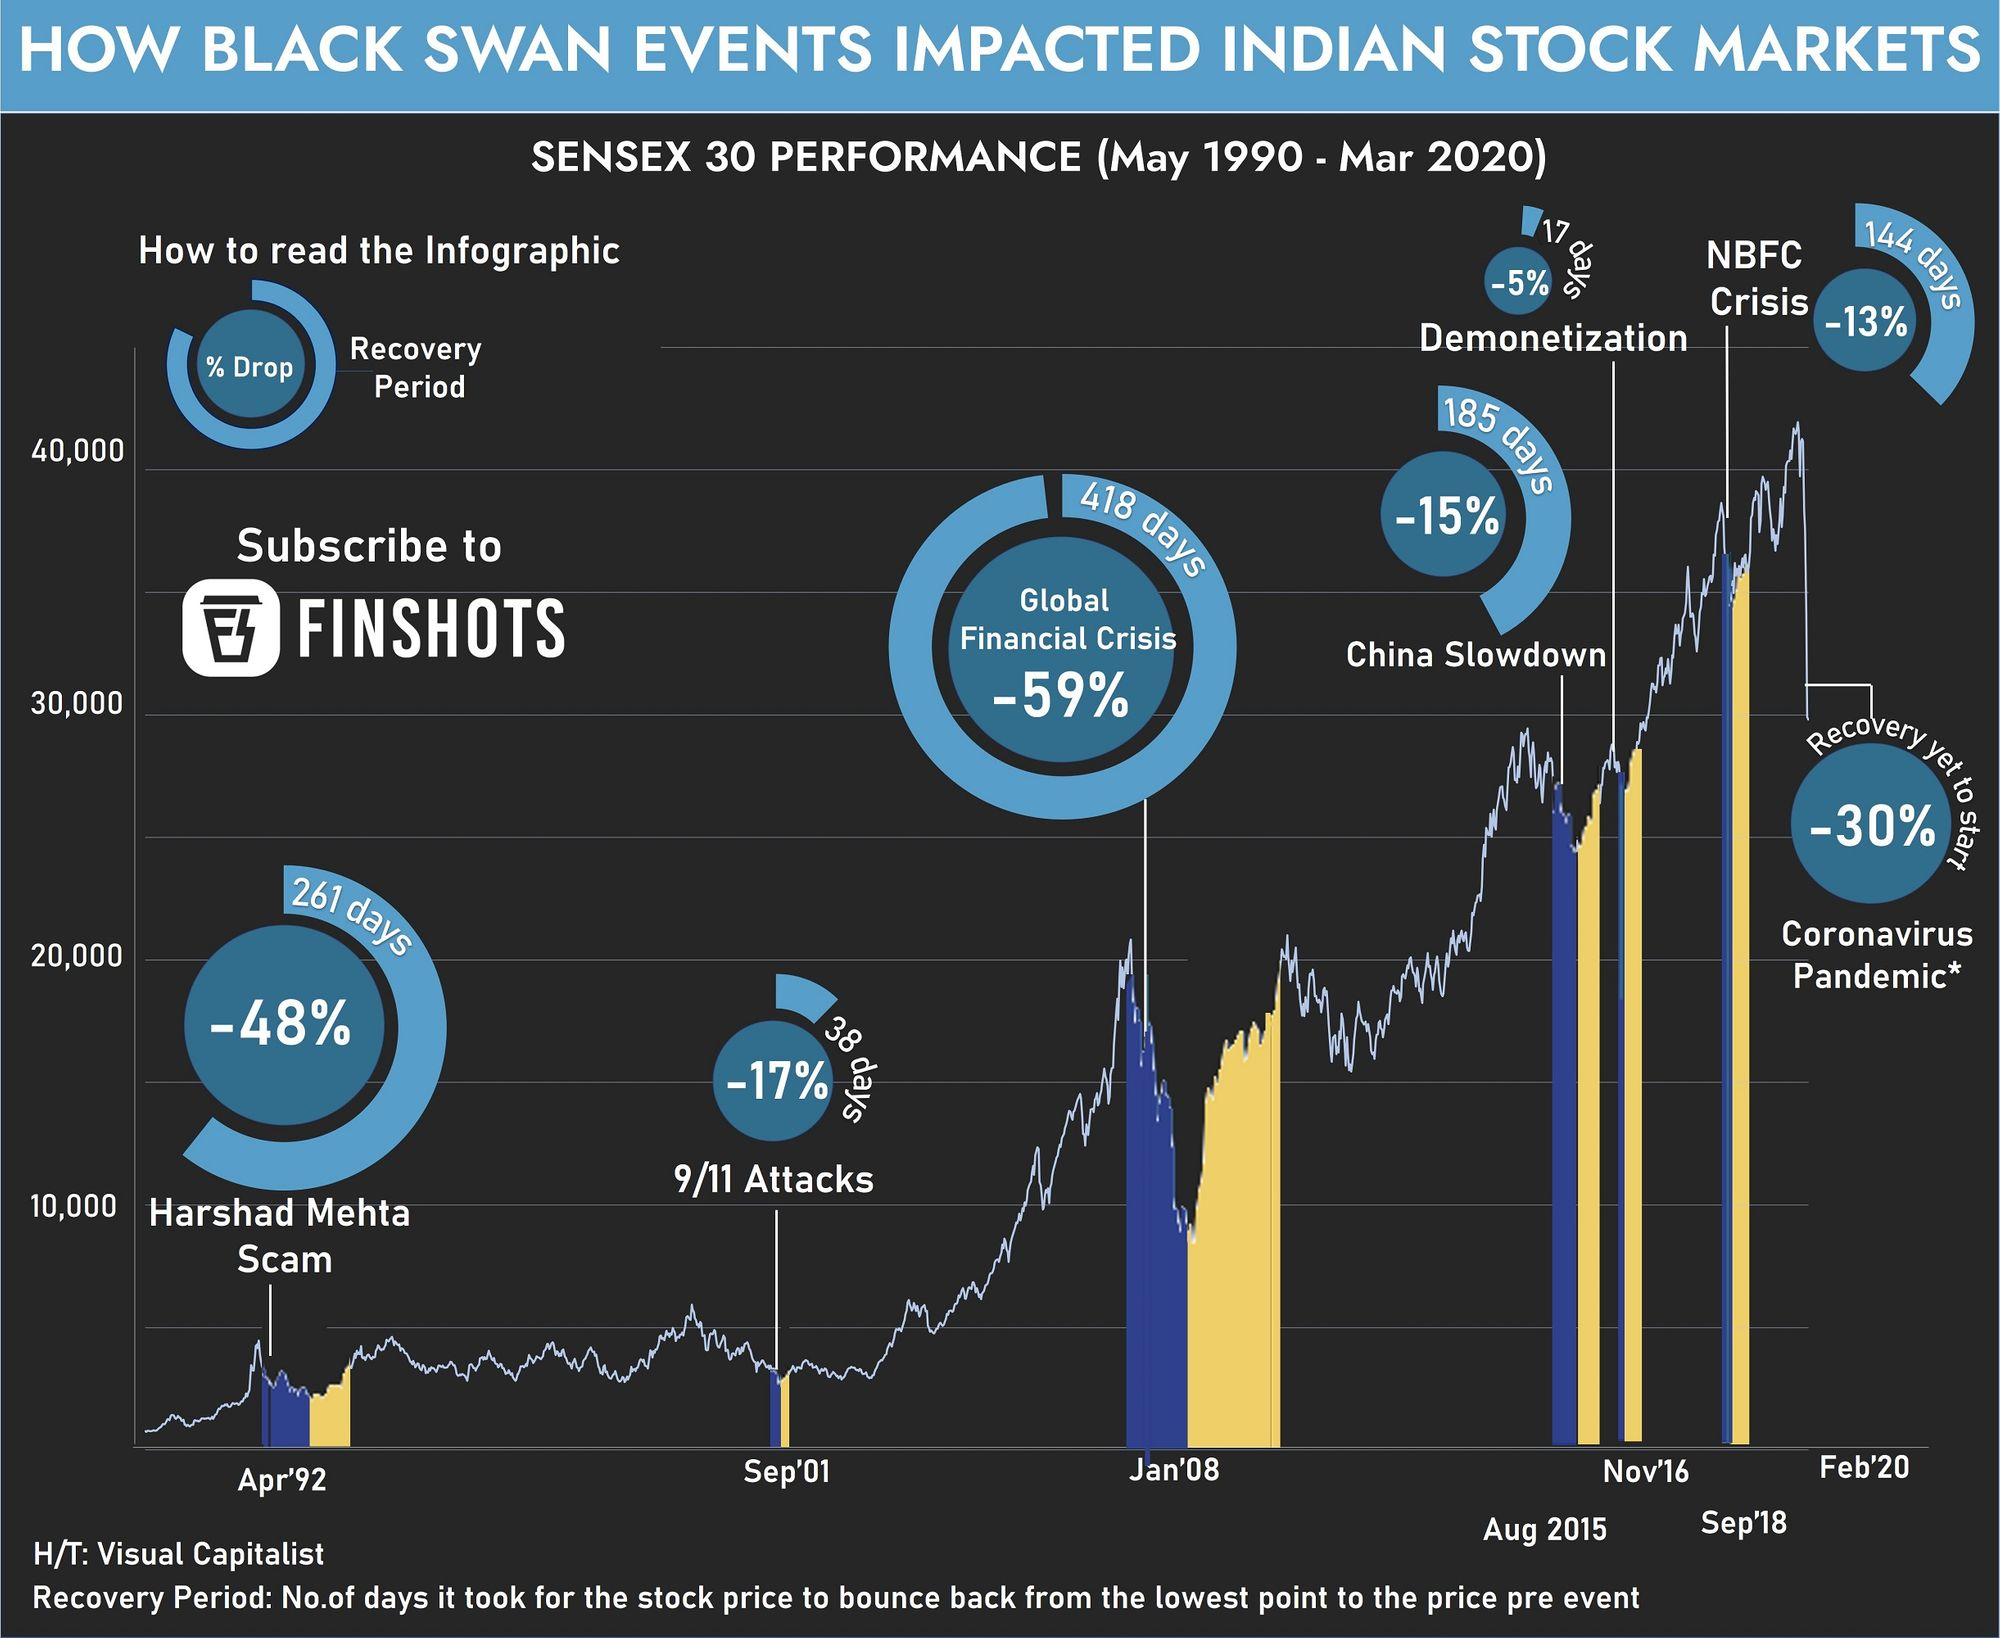 How Black Swan events impacted Indian stock markets